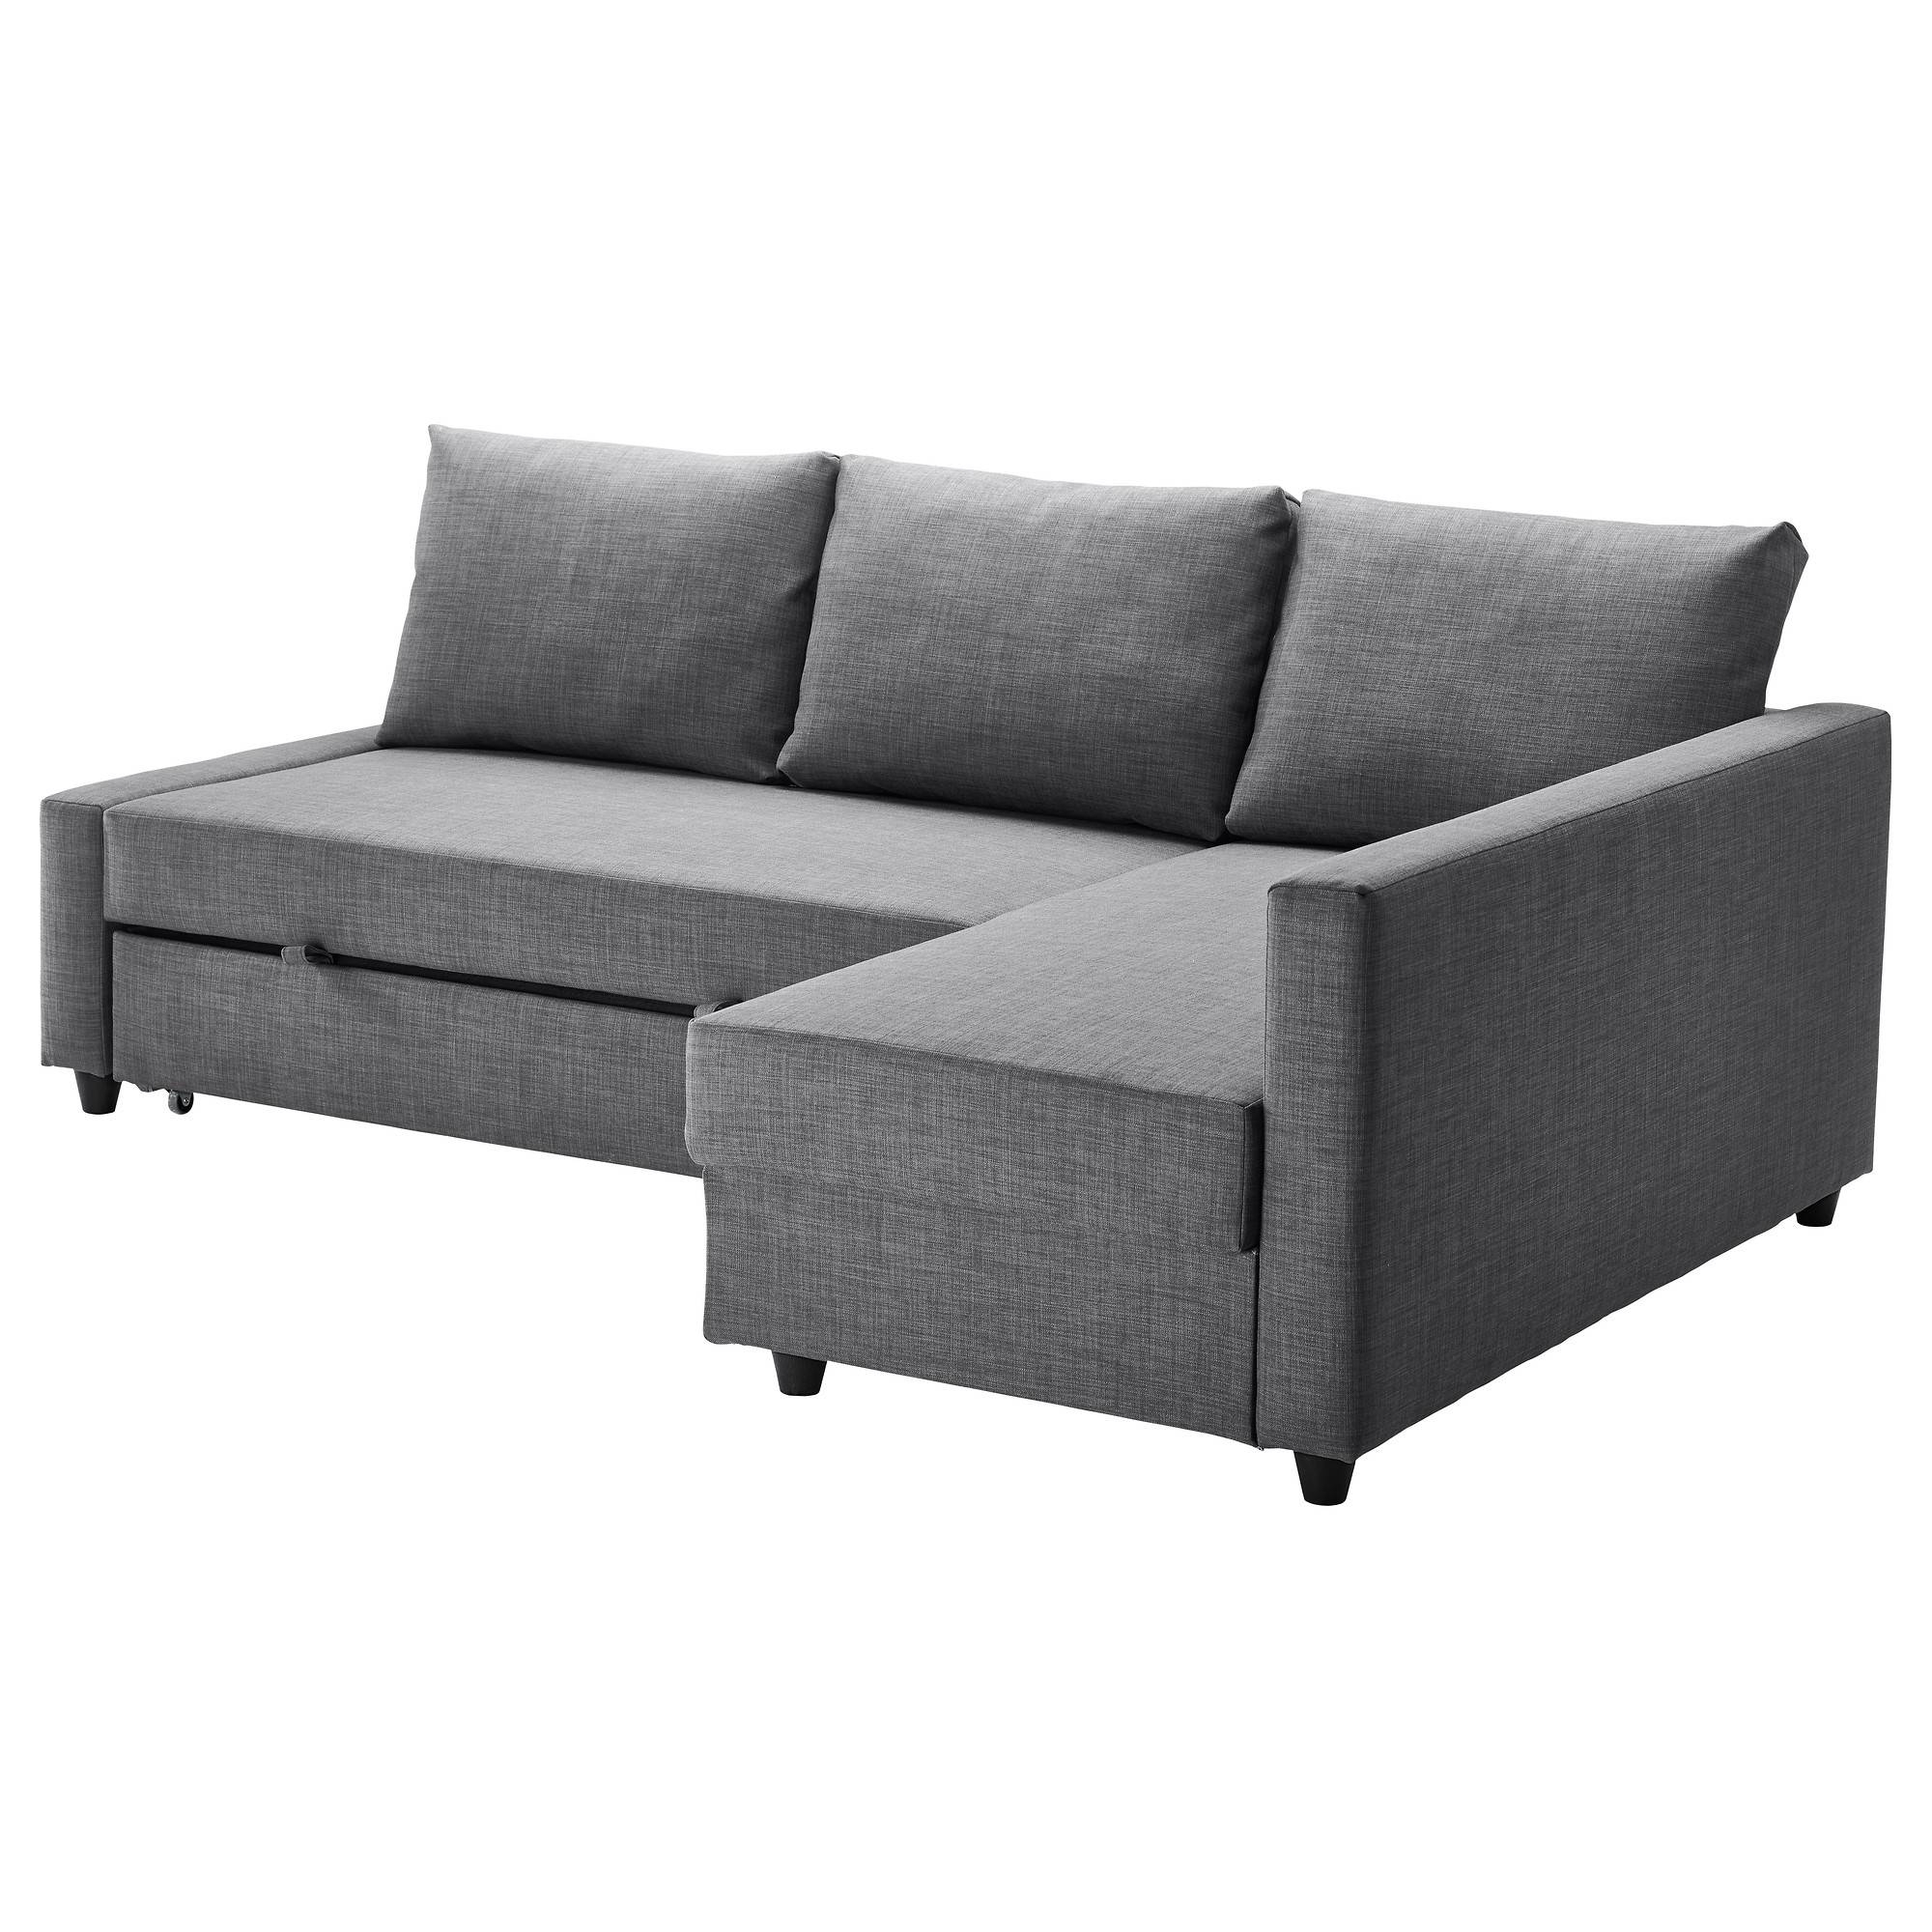 Friheten Corner Sofa Bed With Storage Skiftebo Dark Grey – Ikea Intended For Storage Sofas Ikea (View 8 of 25)